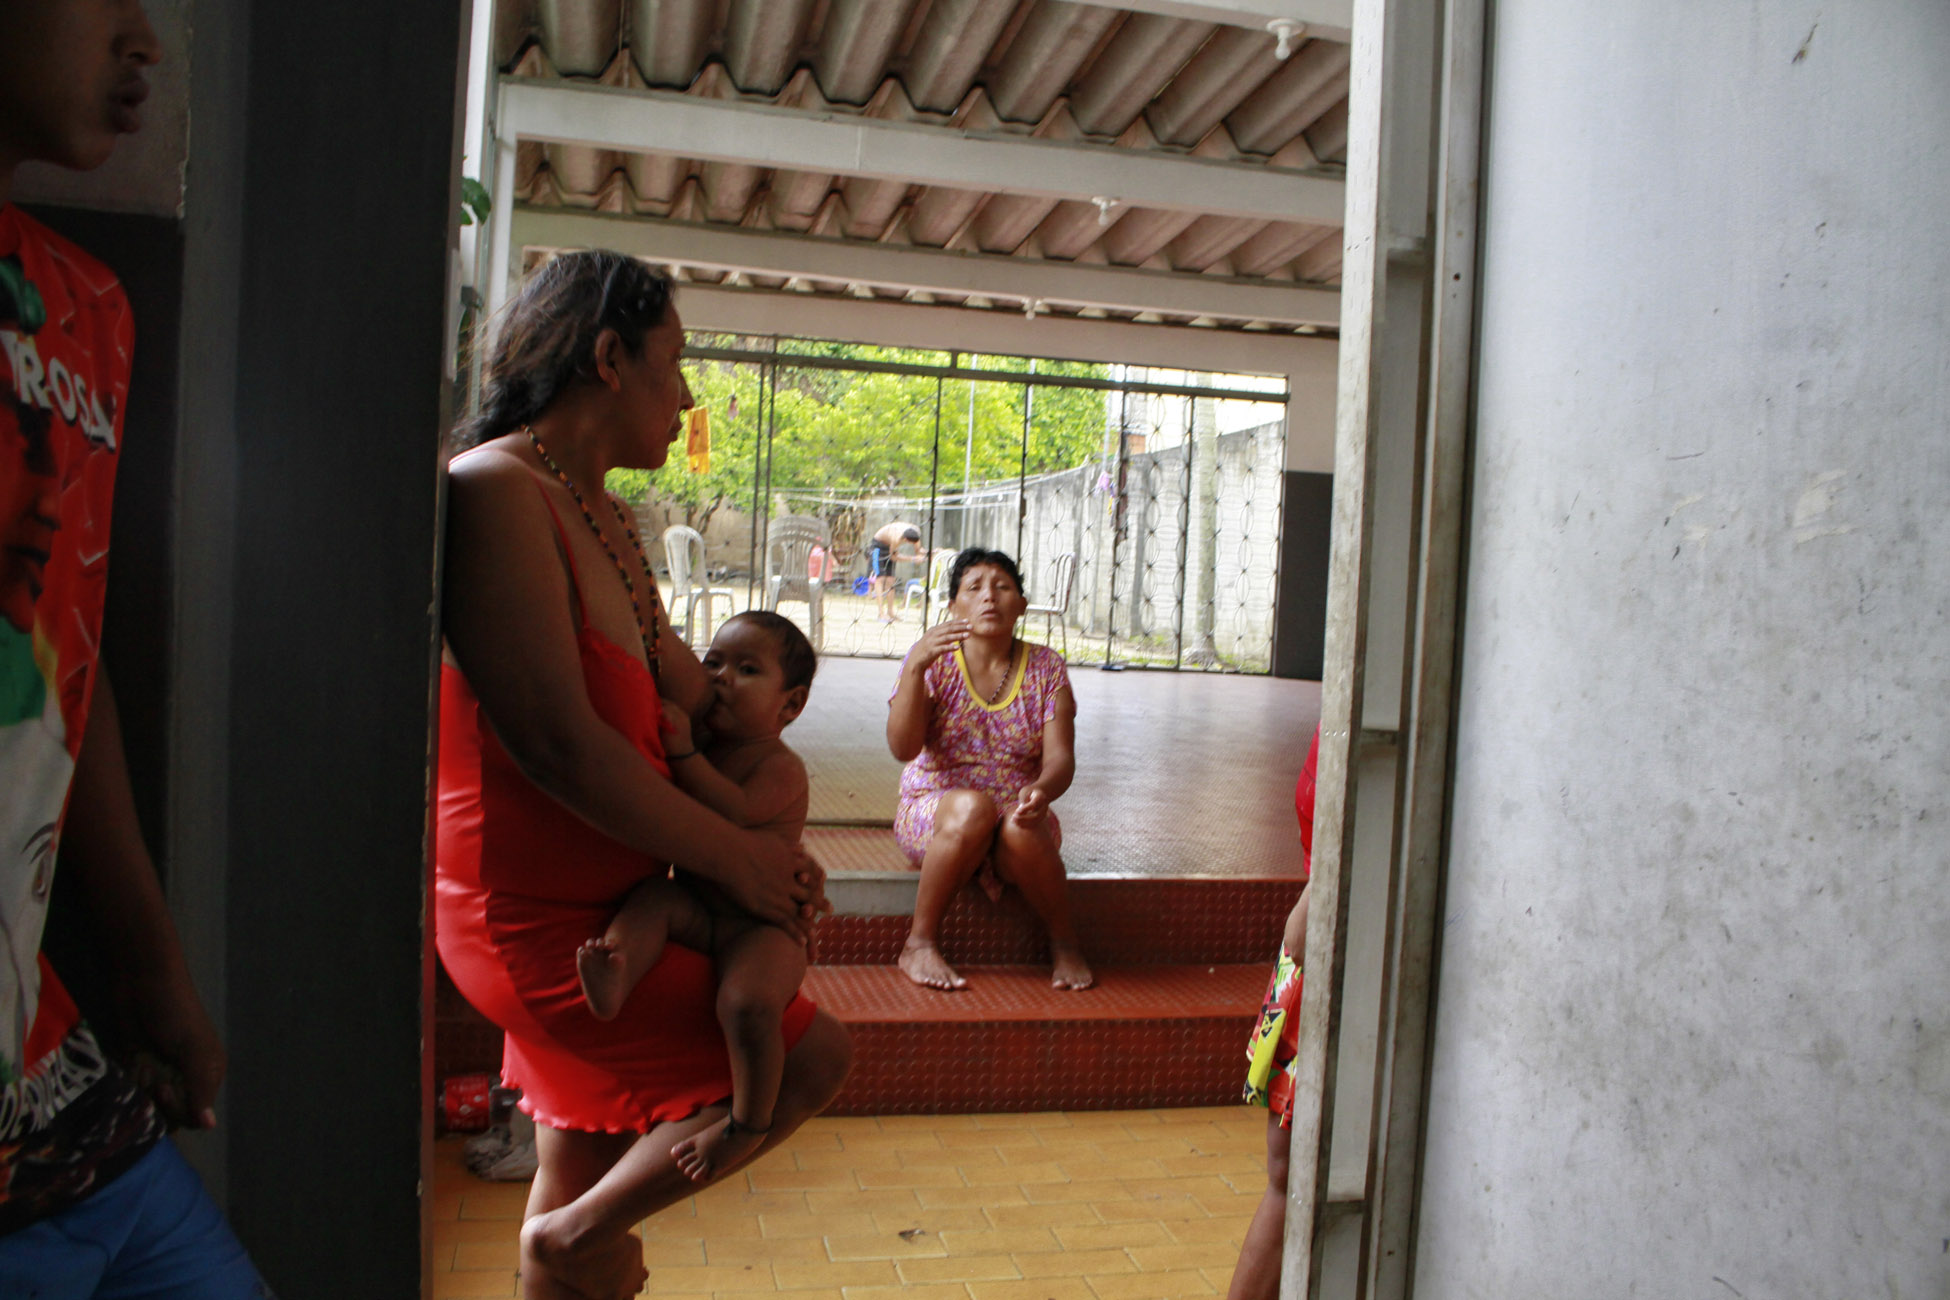 Venezuelan indigenous women in a shelter provided by the city of Manaus, in Amazonas state. Image by Alberto César Araújo / Amazônia Real